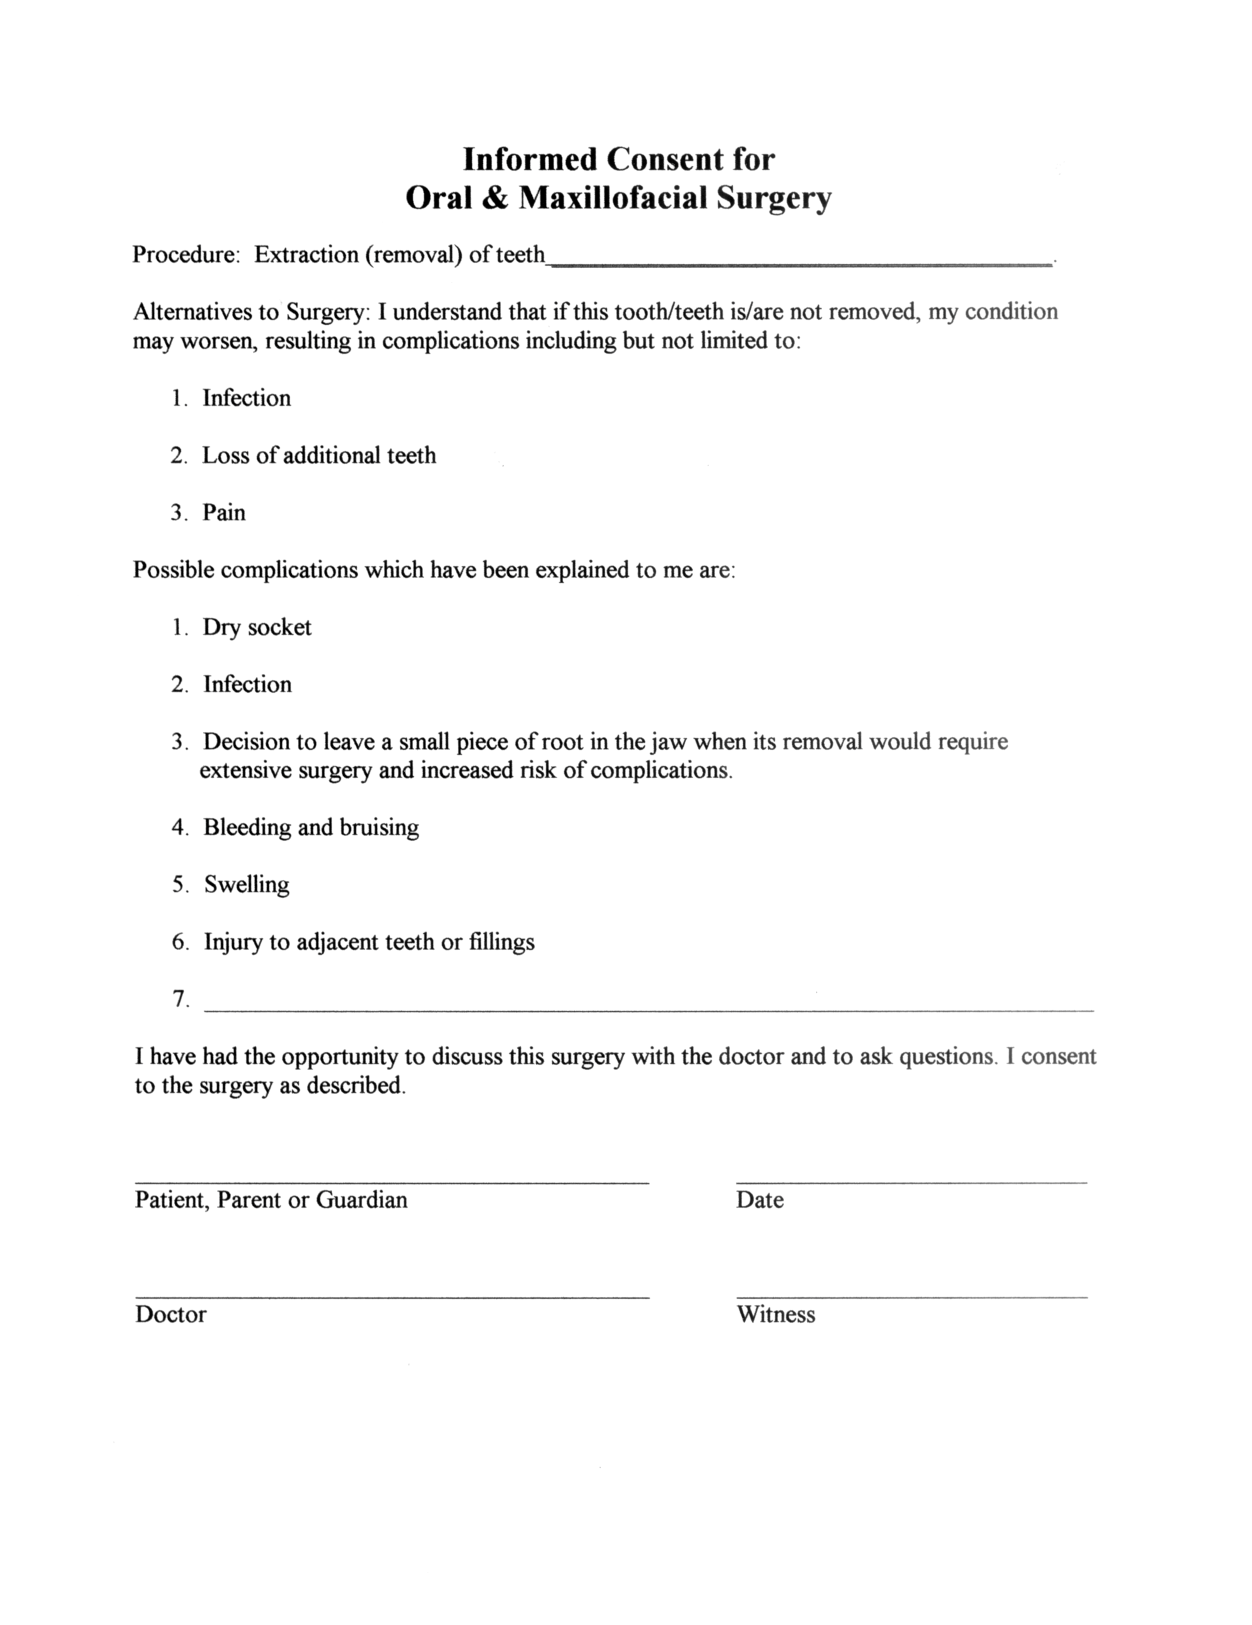 Surgery Informed Consent Form Template  Consent Form